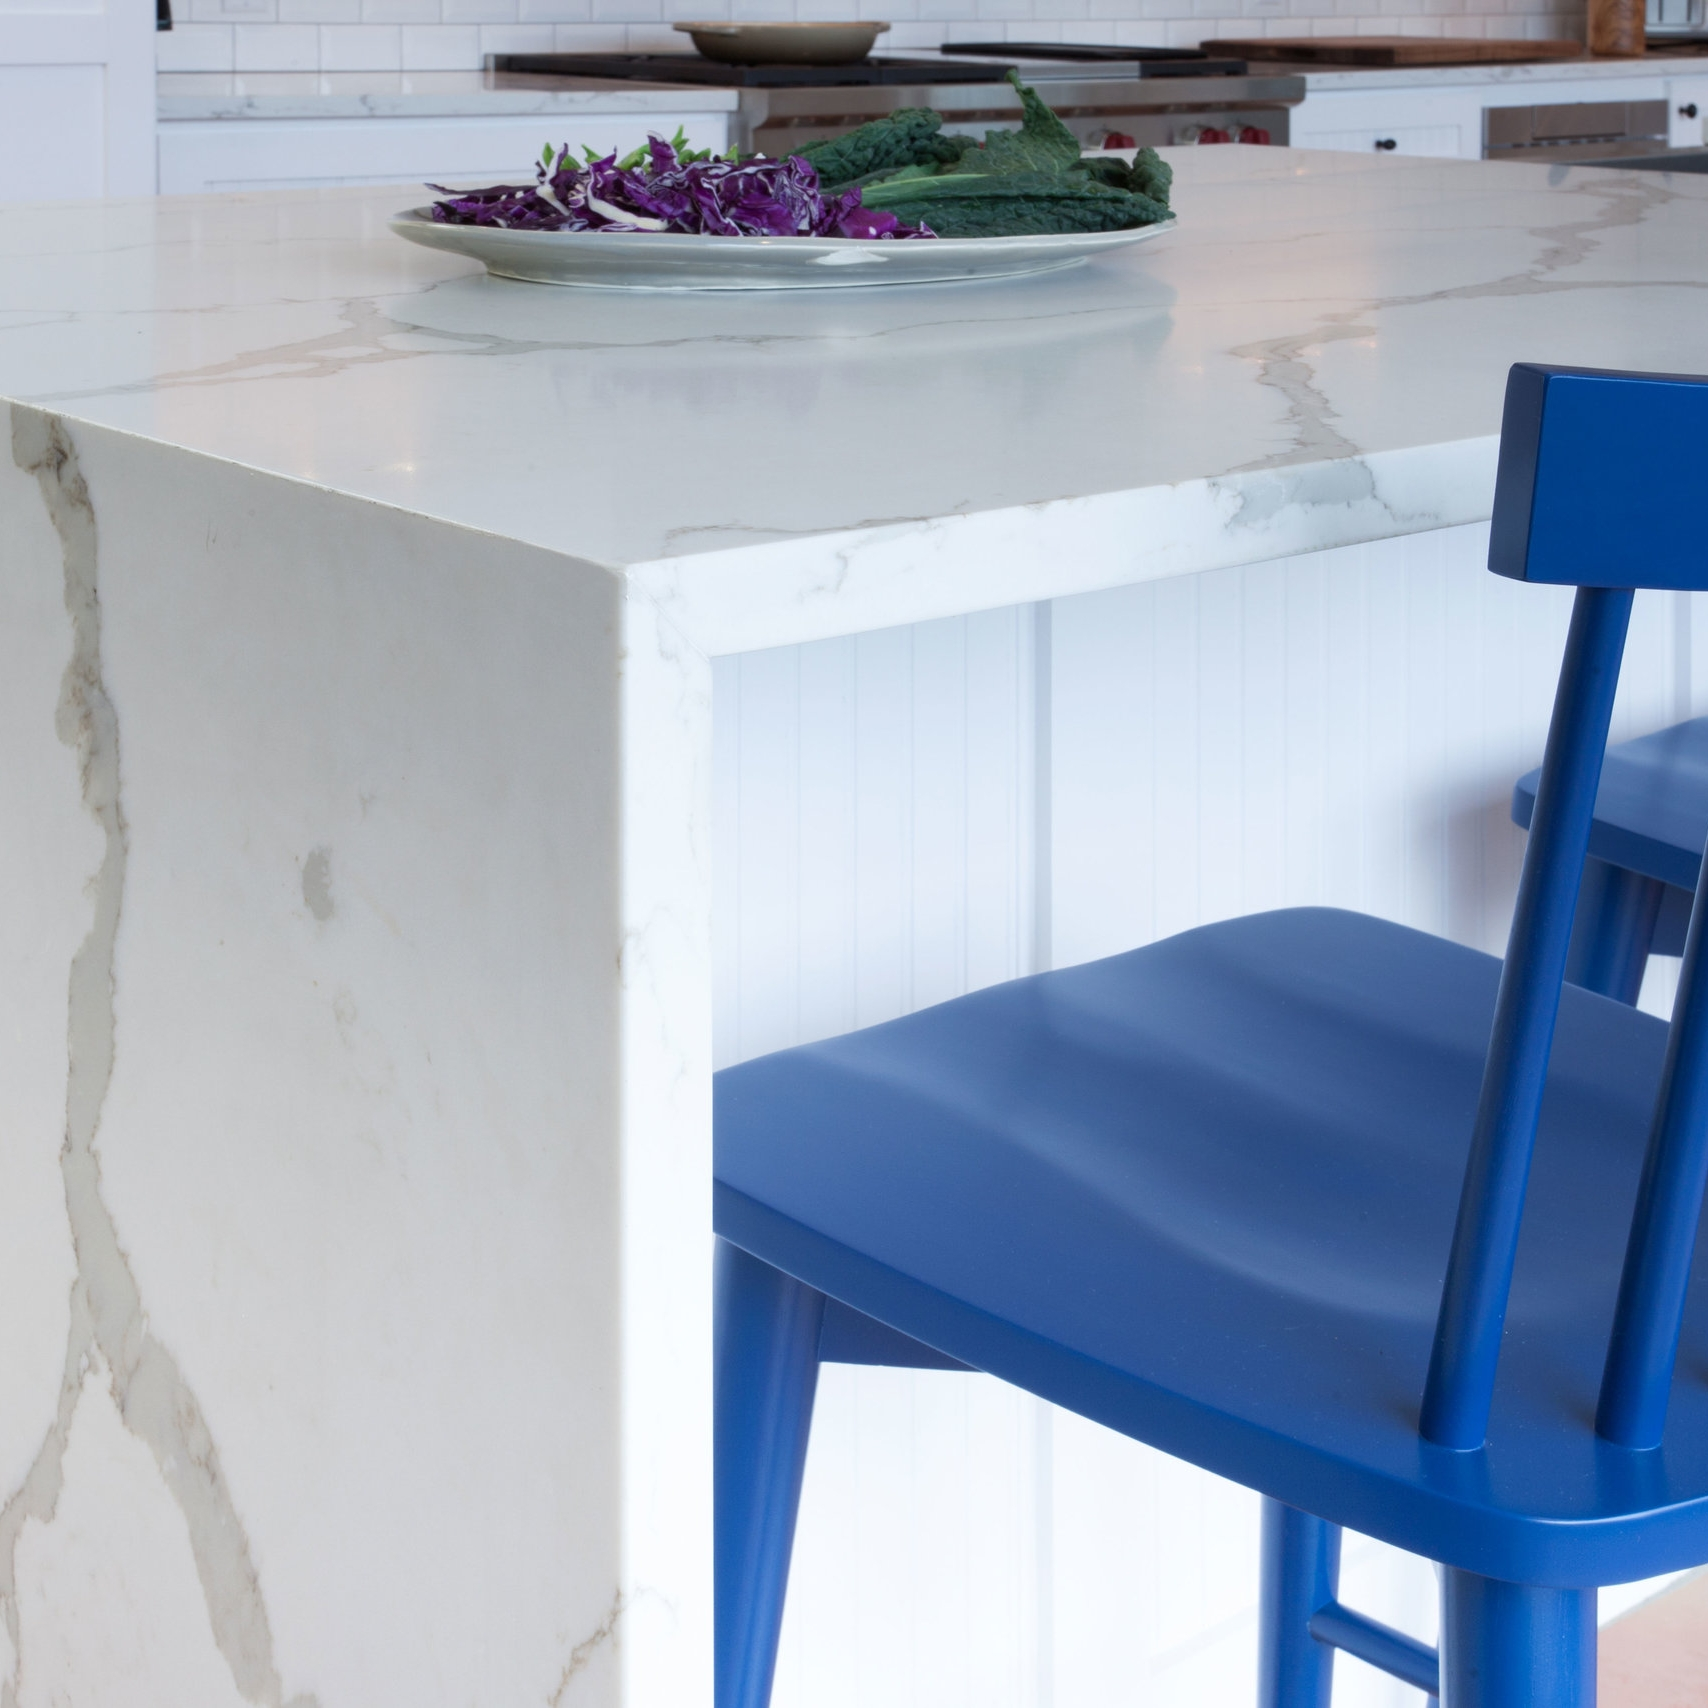 White Marble Kitchen Countertop.jpg